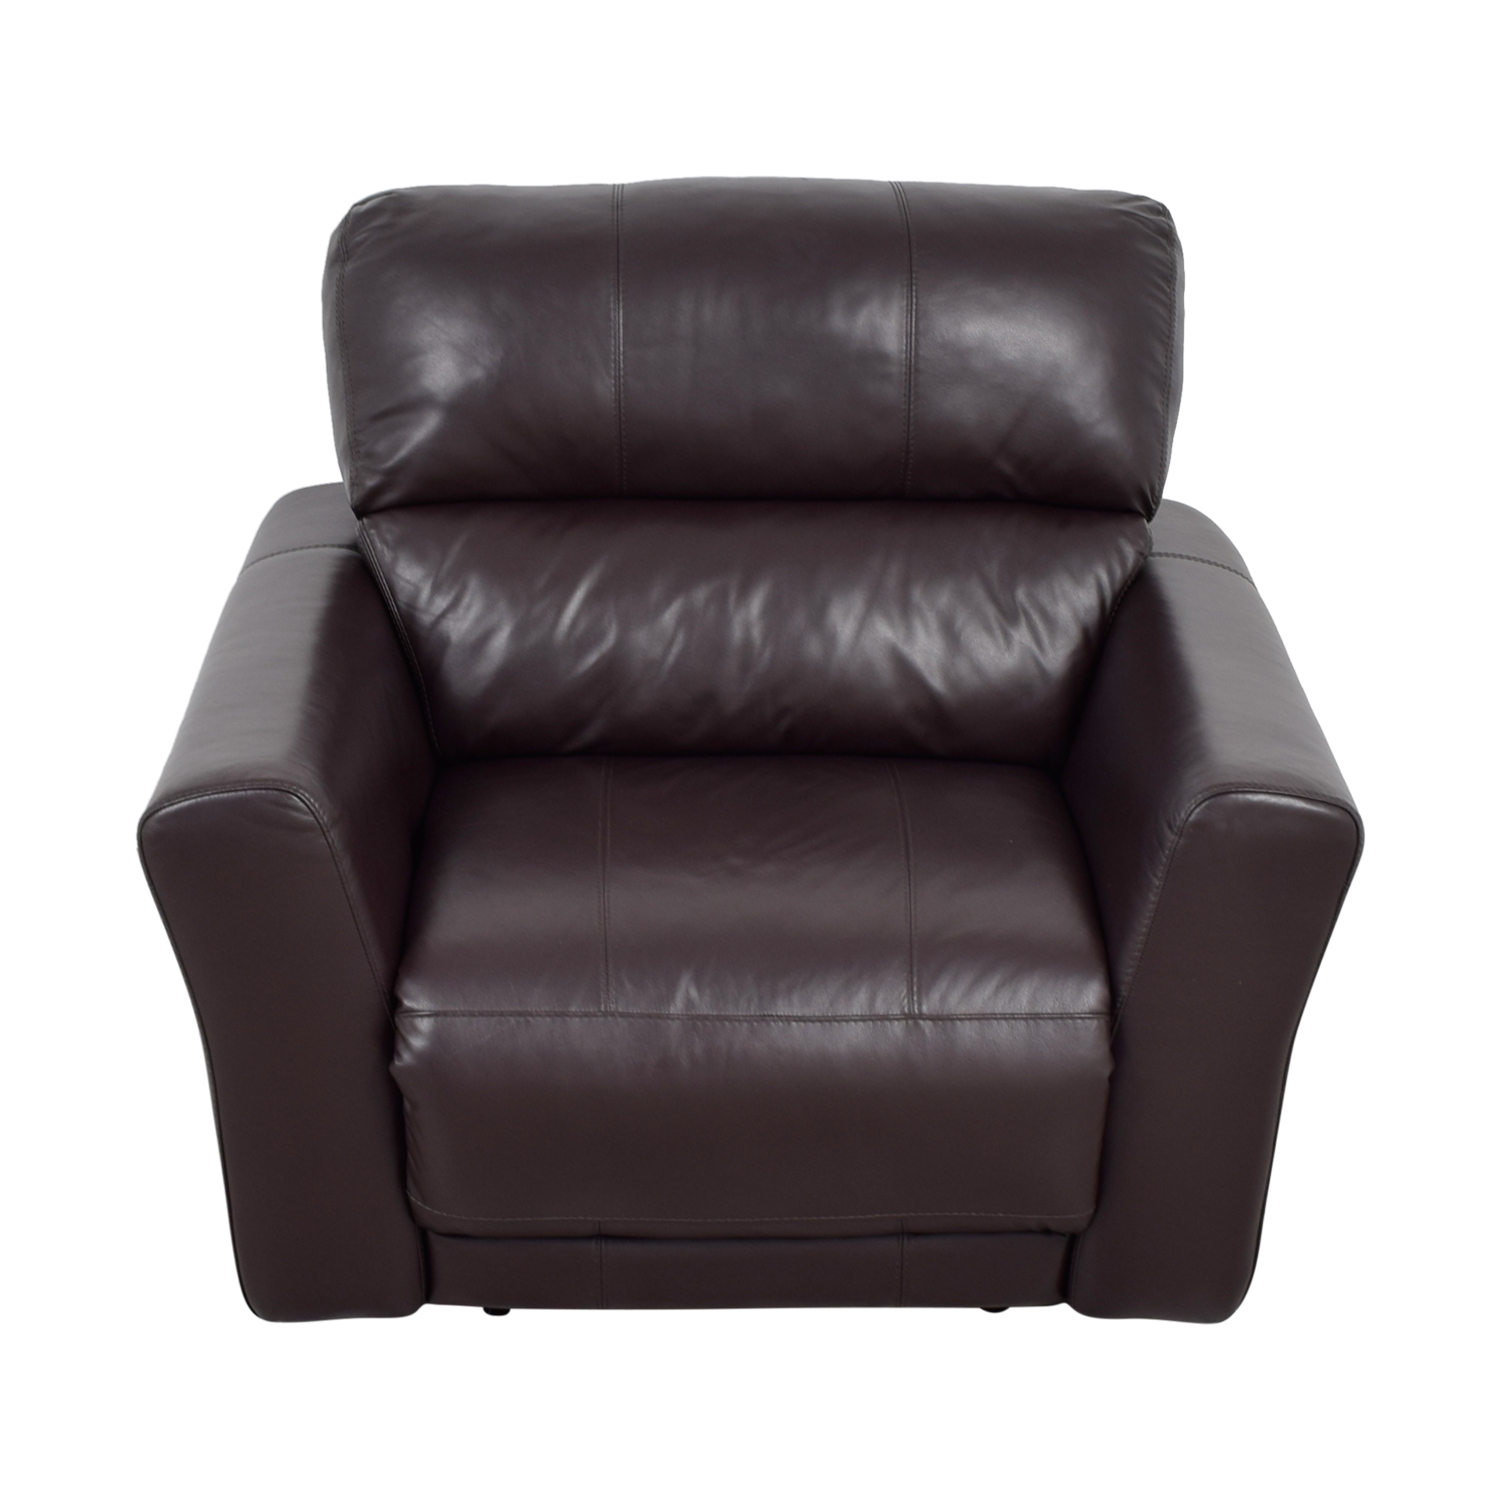 buy Macy's Chocolate Leather Recliner Macy's Chairs